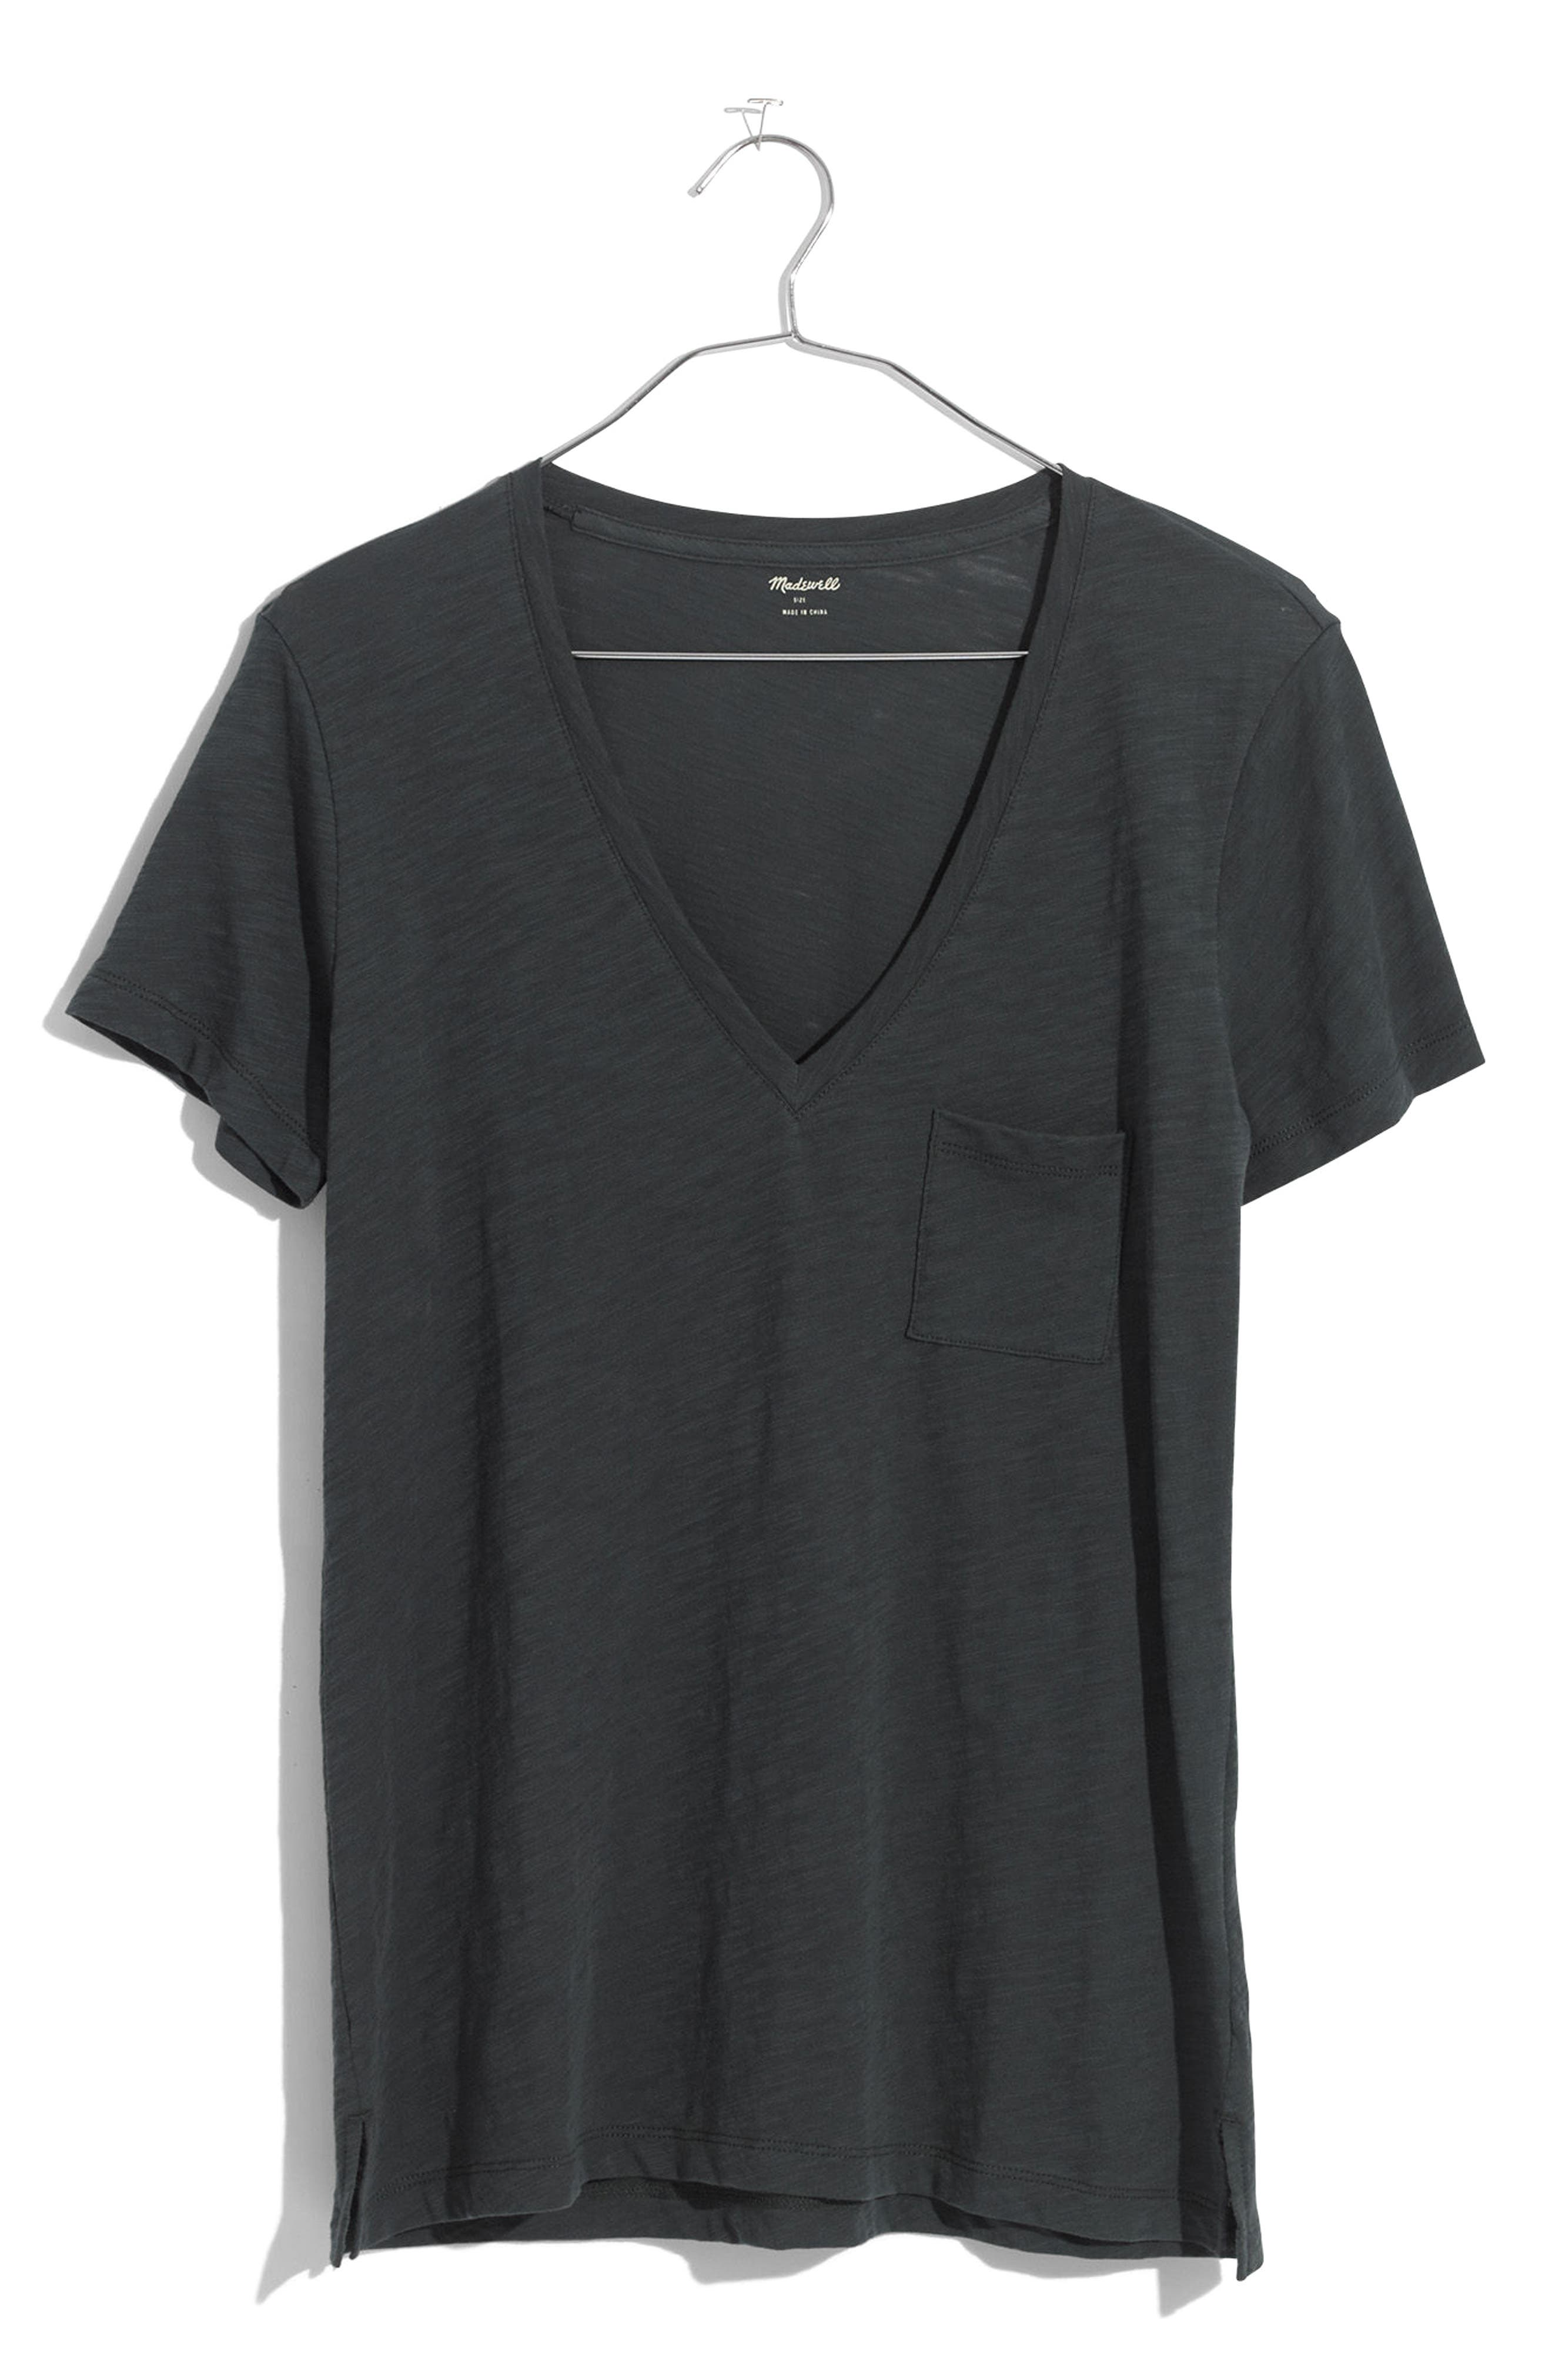 Womens T Shirts Sale Nordstrom Elaine Navy Top Leux Studio Xs